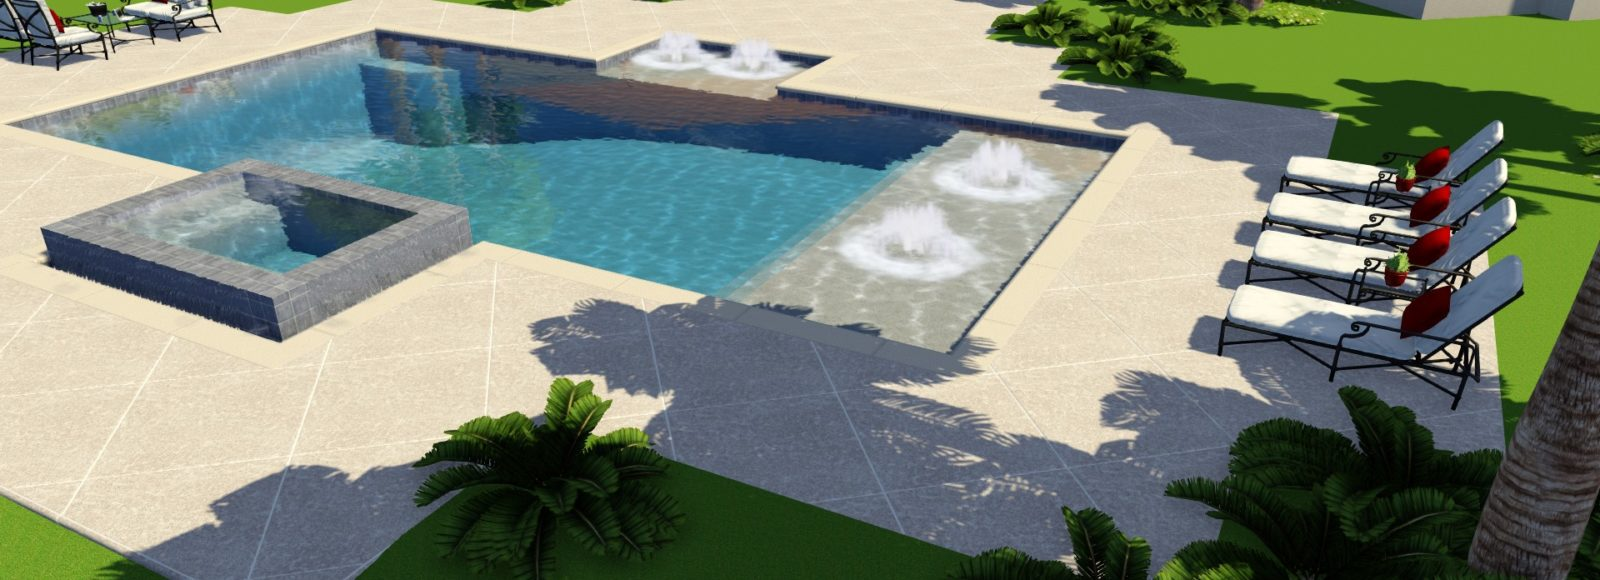 Sammet Pools, Inc. | Designing & Constructing Pools and Spas